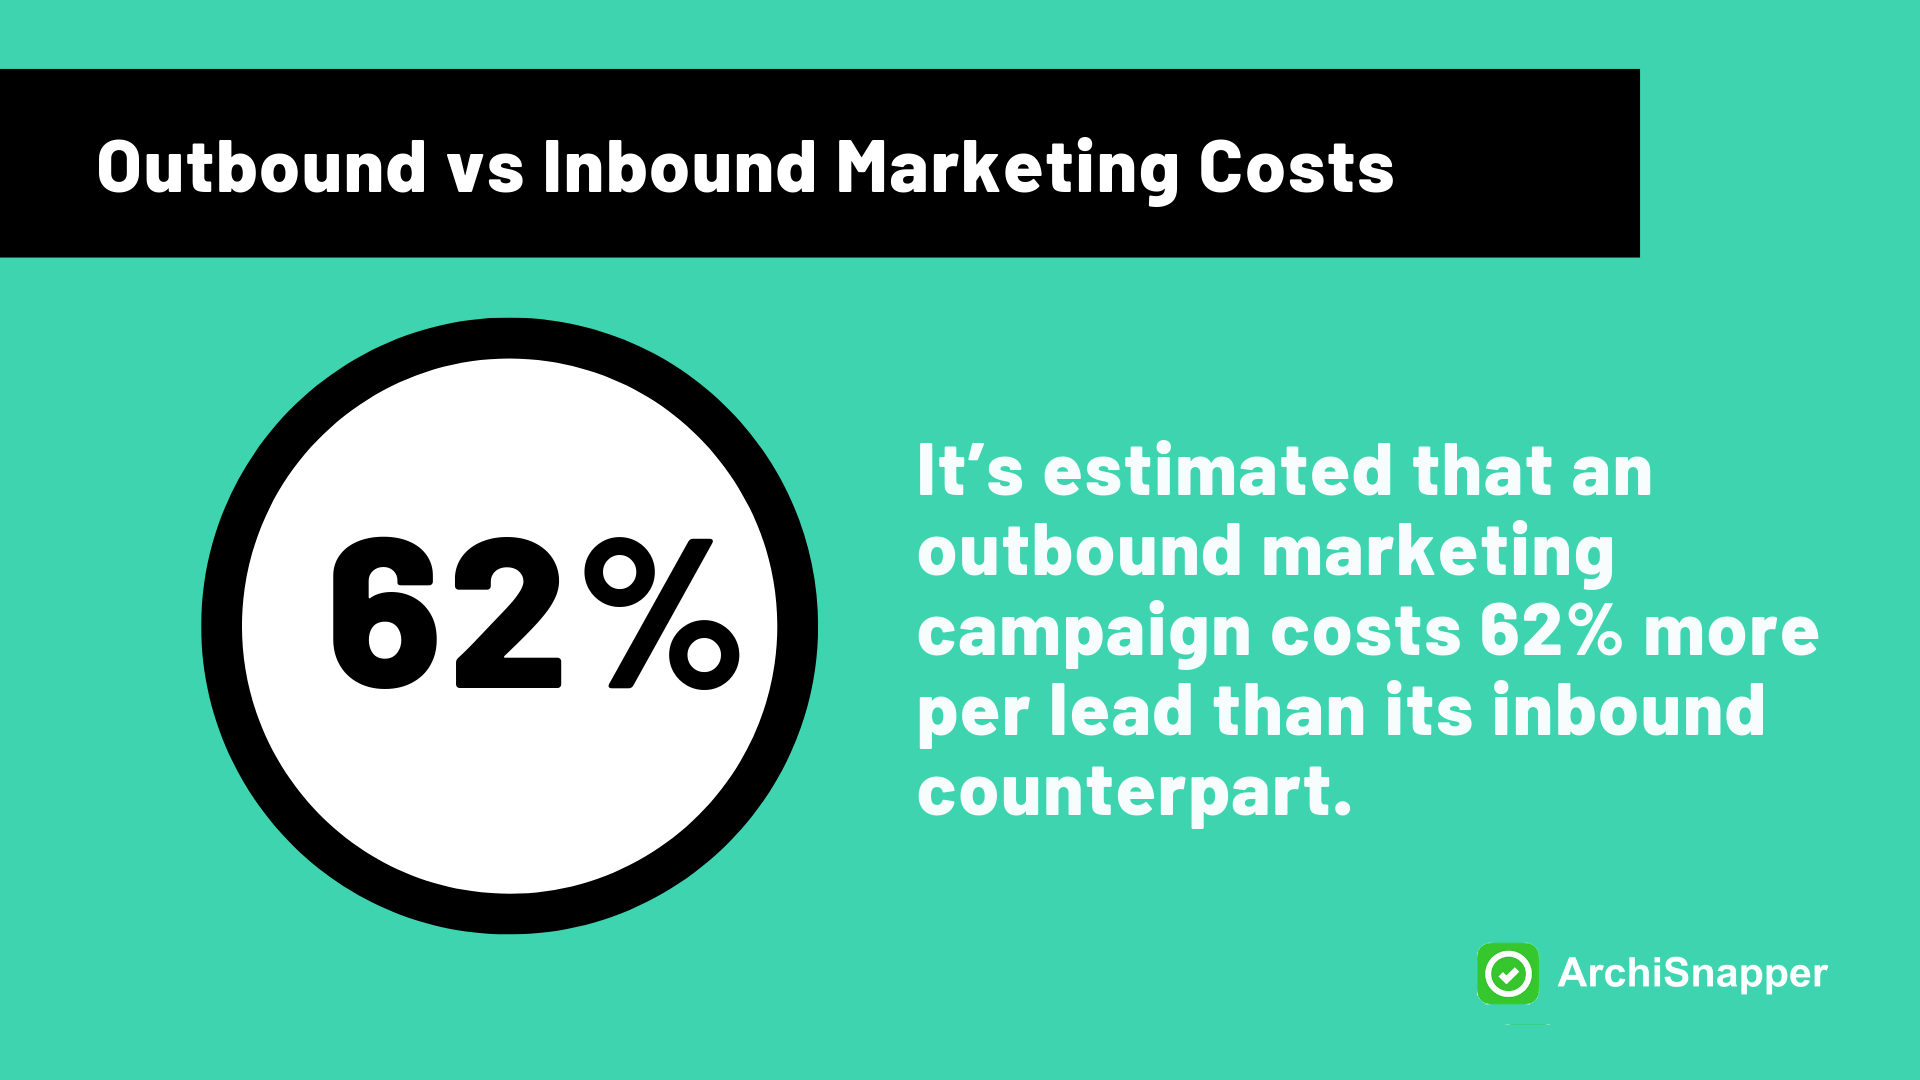 Inbound vs Outbound marketing coss according to HubSpot | Archisnapper